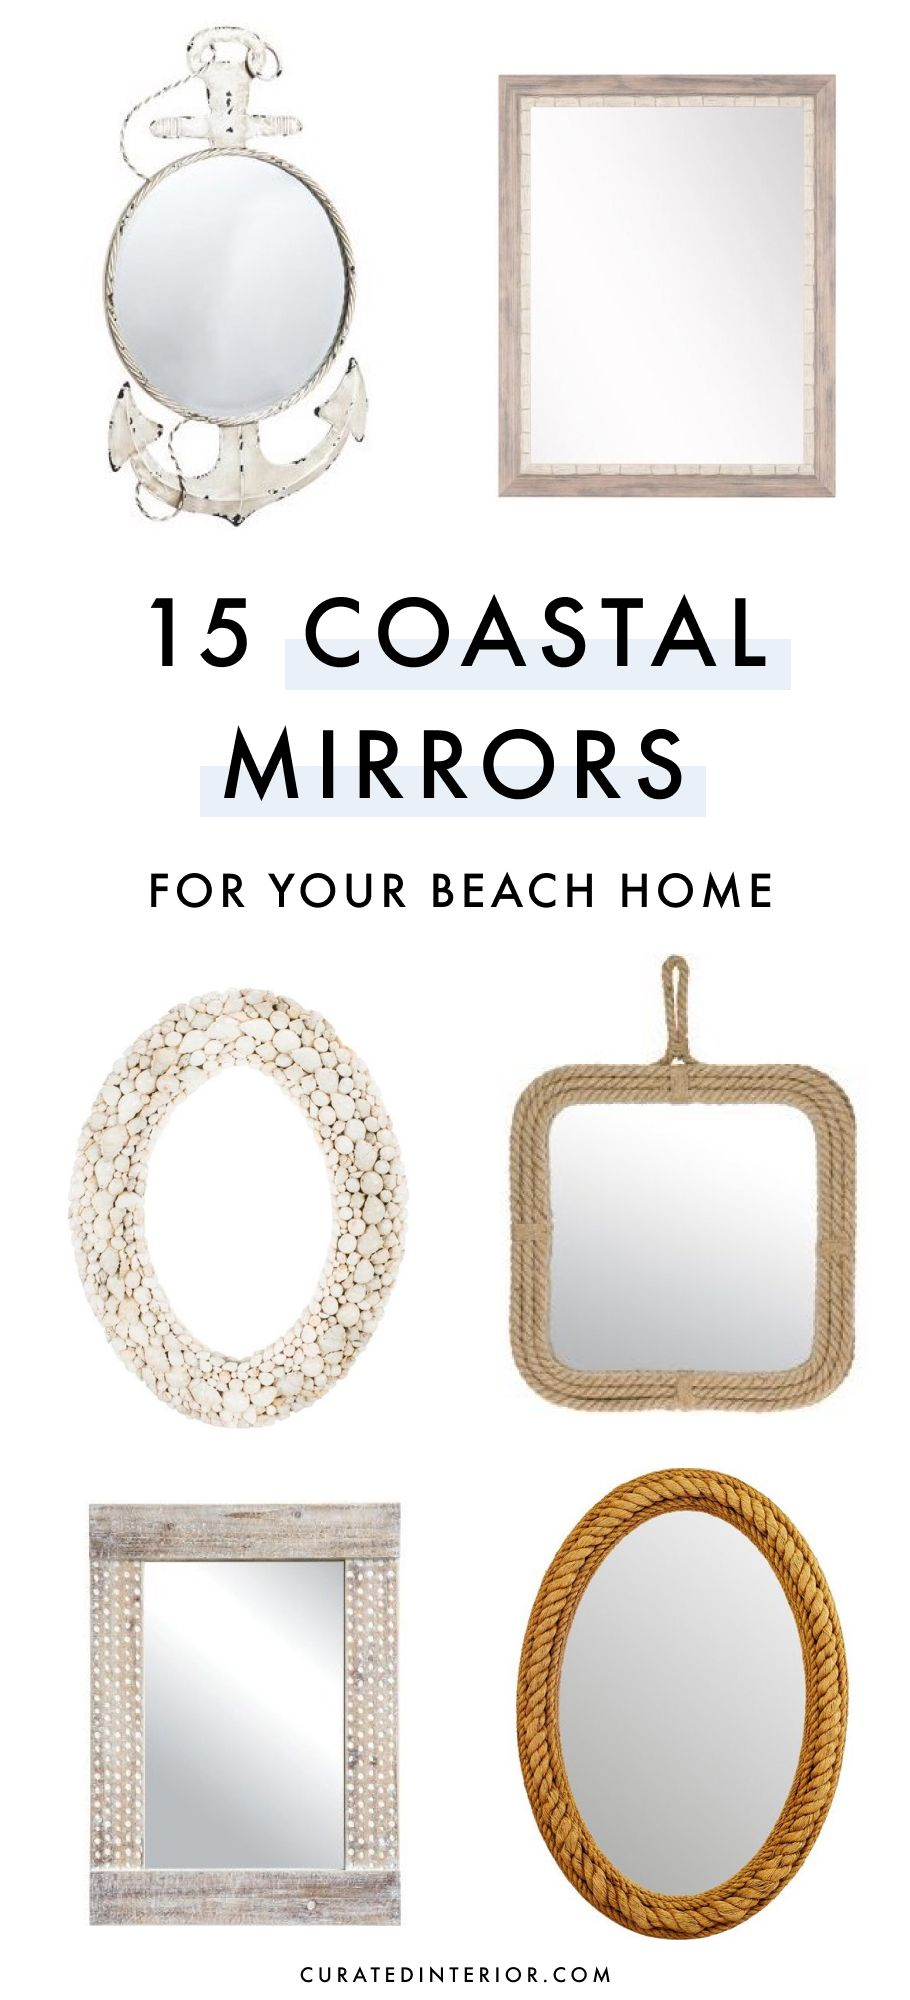 15 Coastal Mirrors for your Beach Home